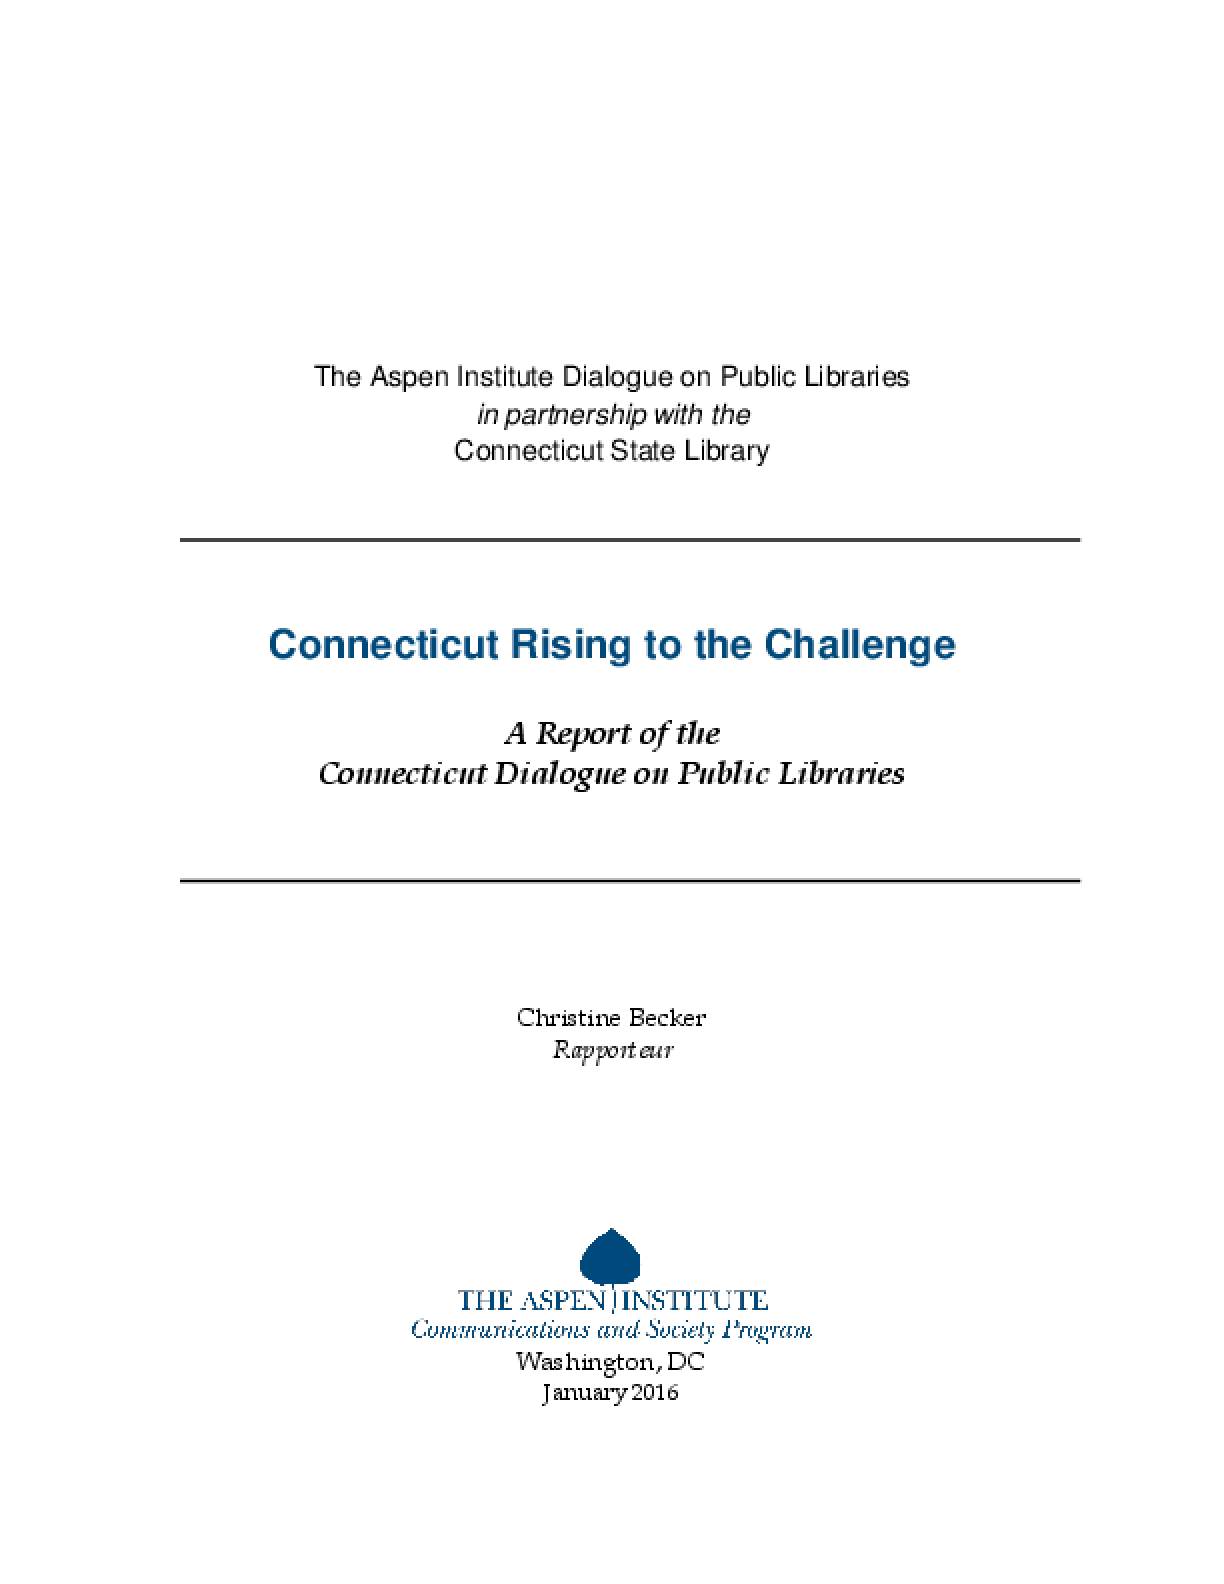 Connecticut Rising to the Challenge: A Report of the Conecticut Dialogue on Public Libraries